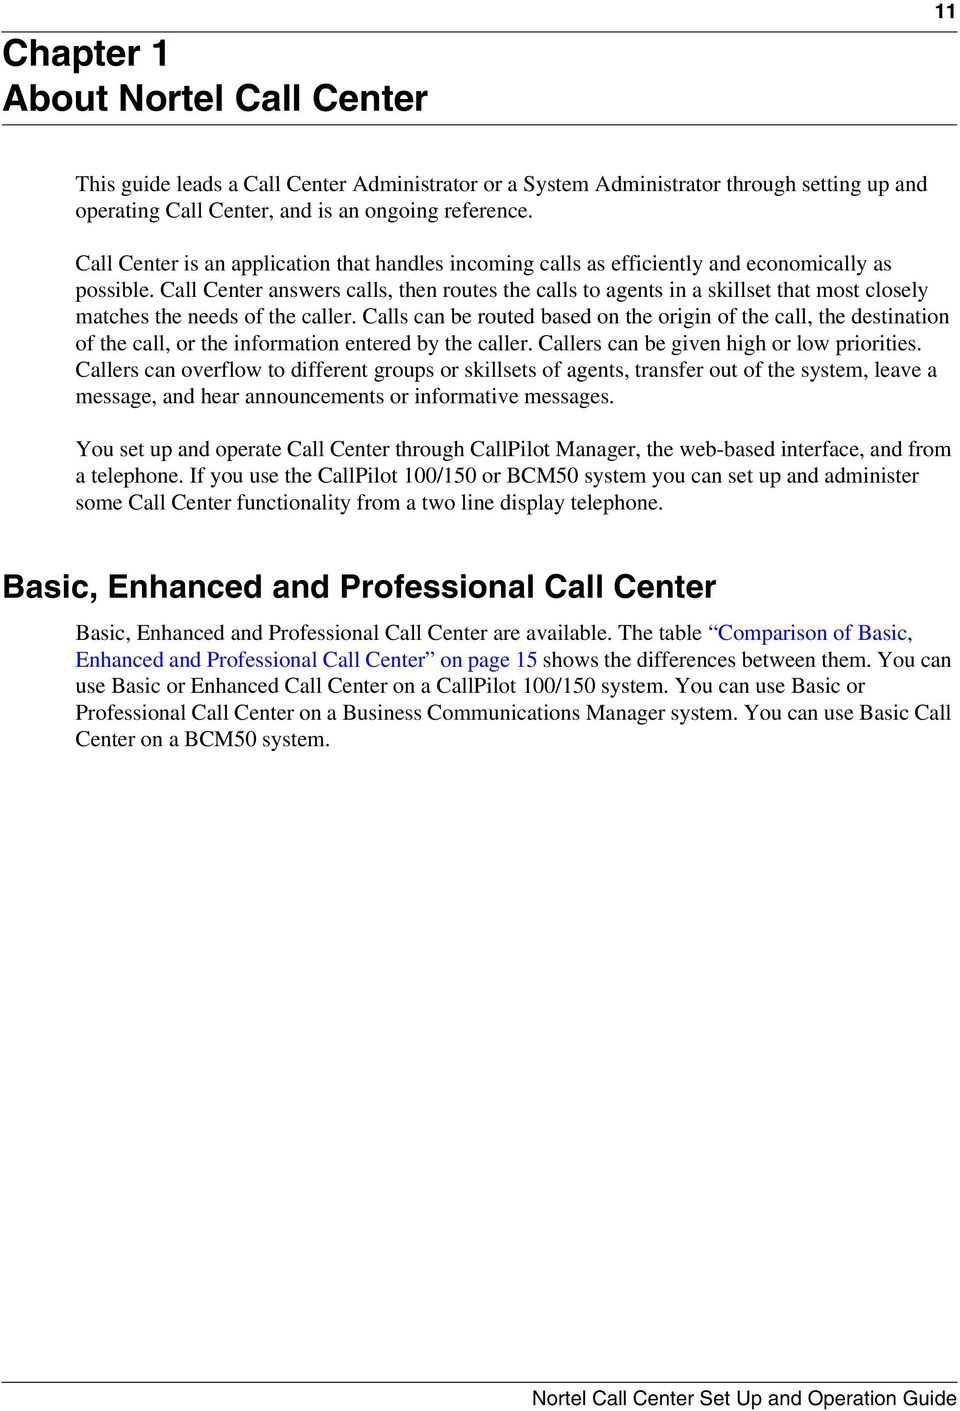 Nortel Call Center Set Up and Operation Guide - PDF